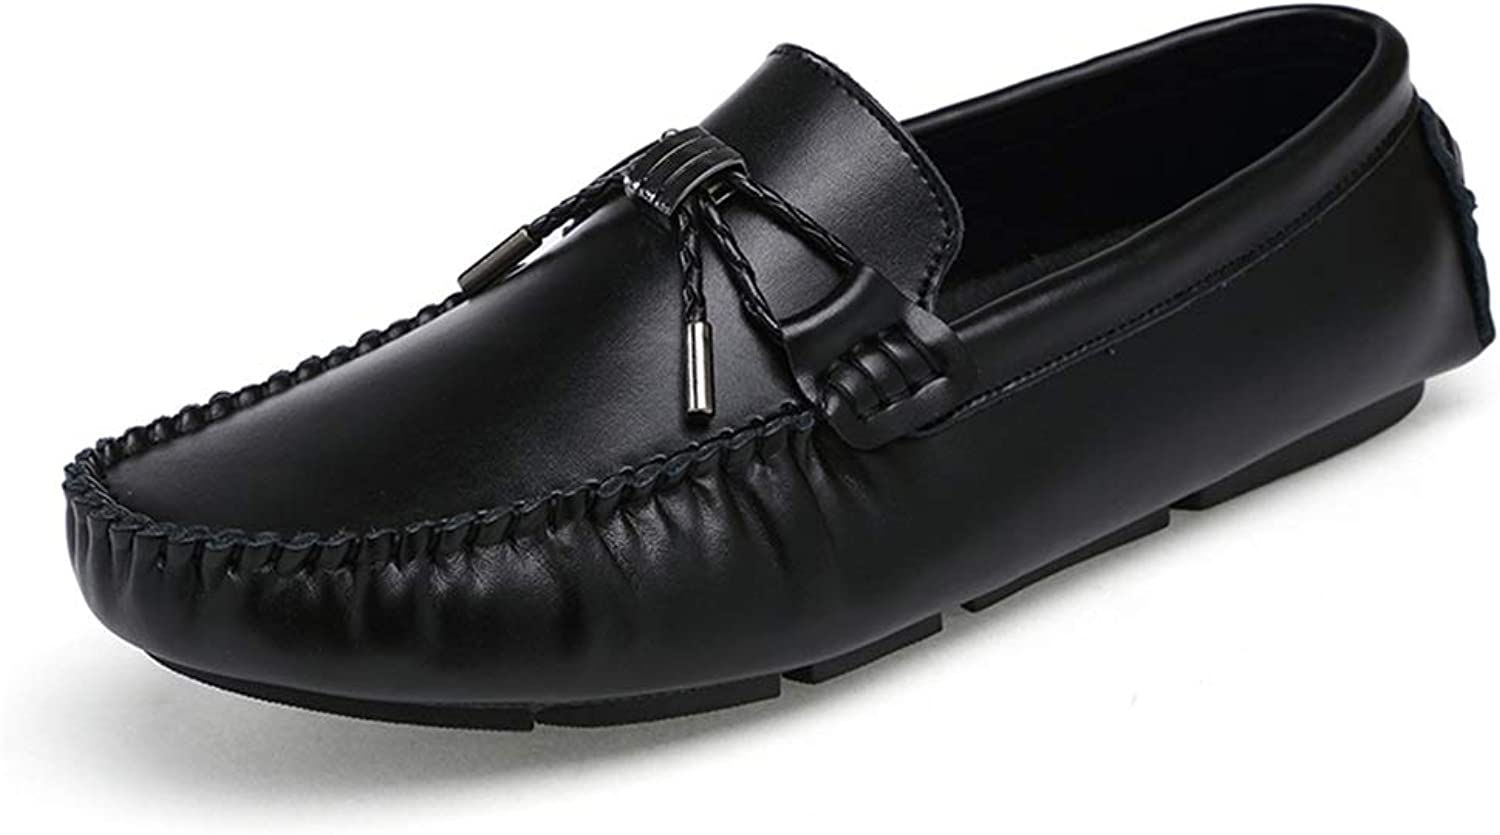 Easy Go Shopping Driving Loafer for Men Bowknot Moccasins Genuine Leather Lightweight Comfortable Soft Boat shoes Cricket shoes